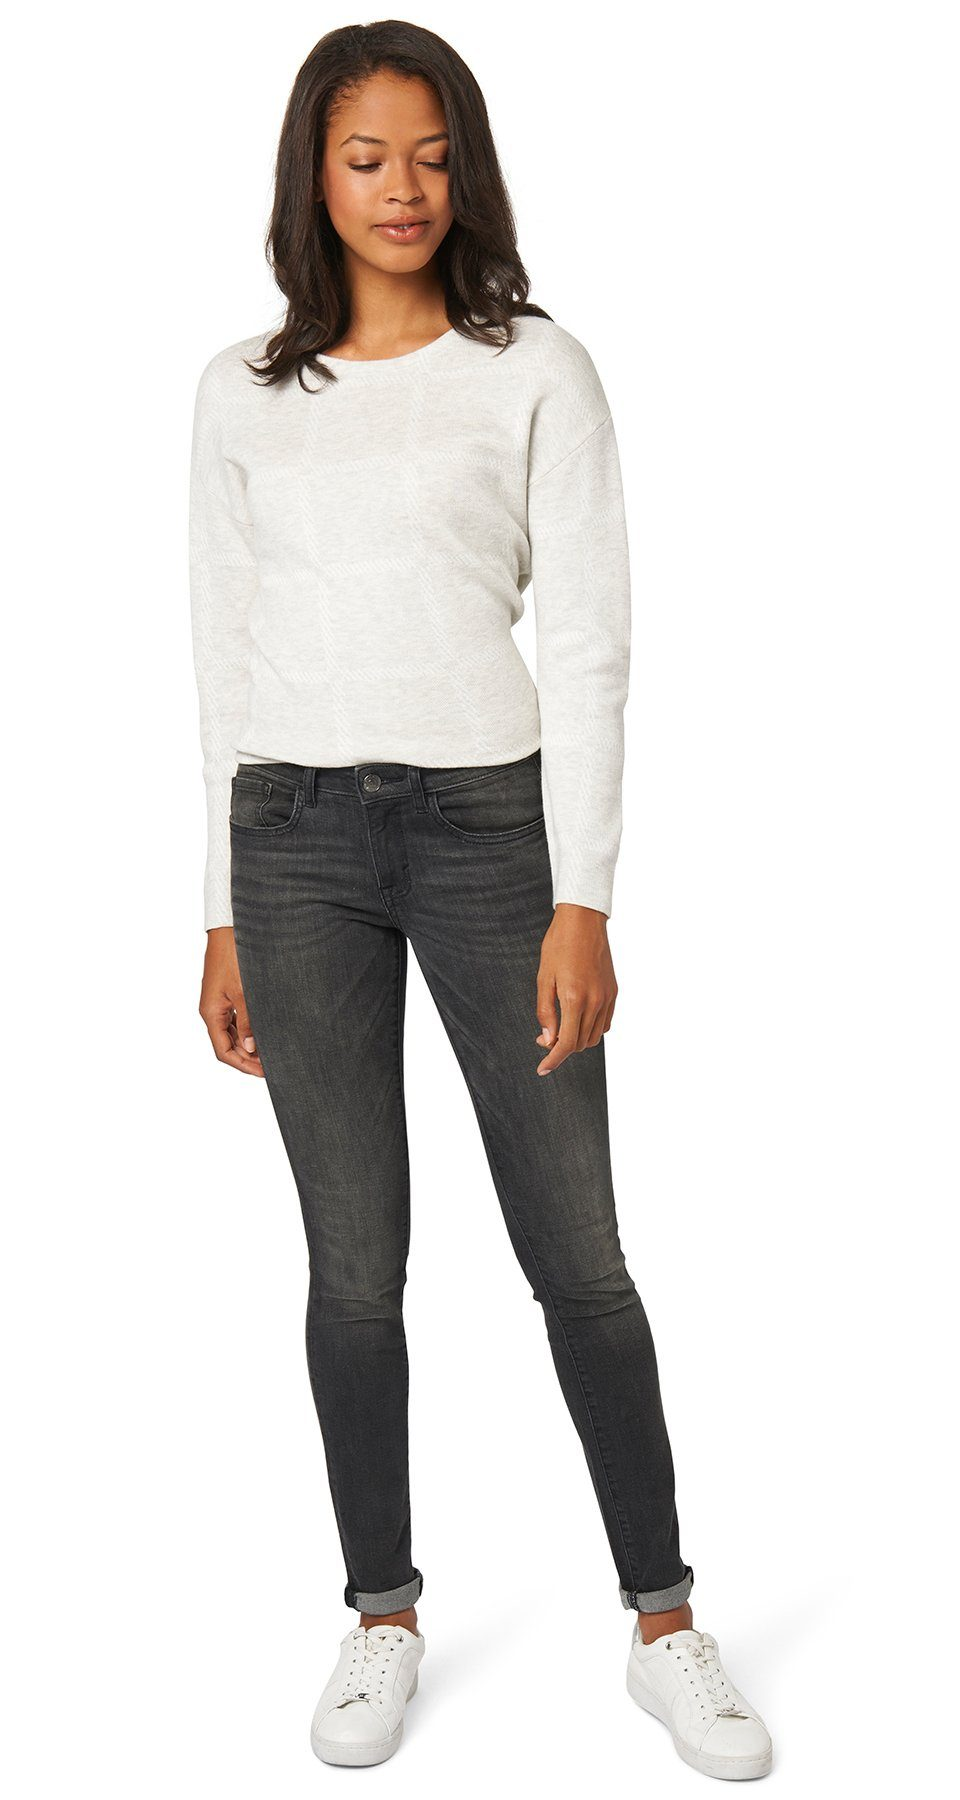 TOM TAILOR Jeans »Jeans mit Waschung«